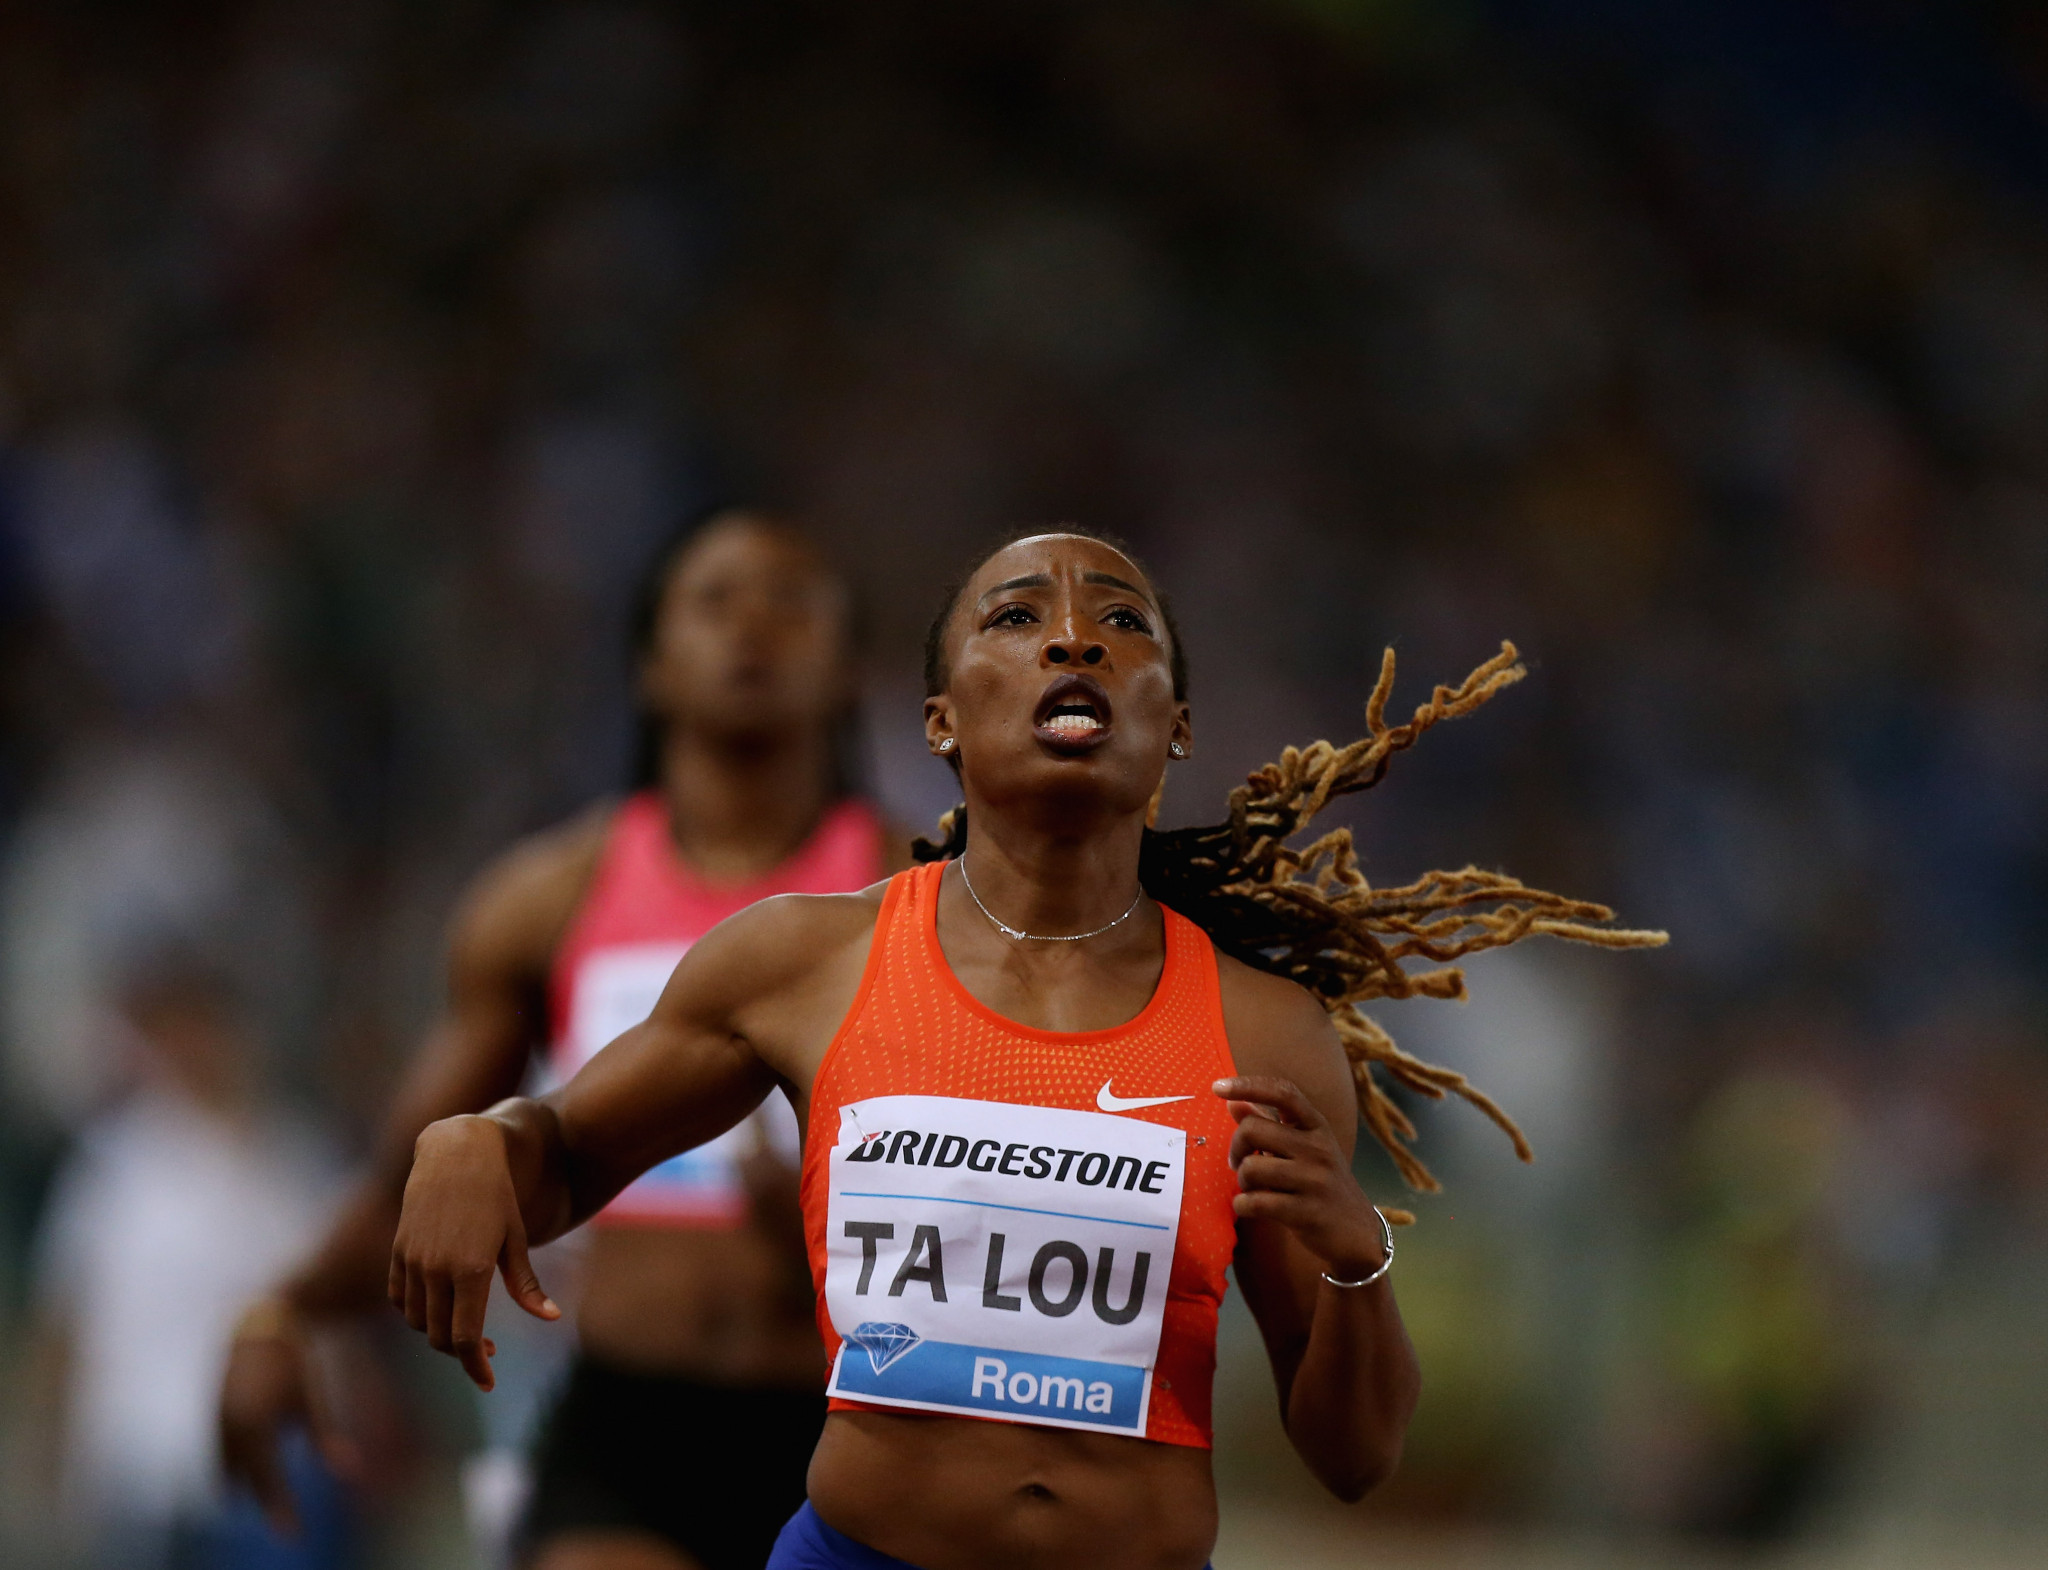 Ivory Coast's Marie-Josée Ta Lou, one of the most decorated athletes in African Athletics Championships history, was set to defend her 100 metre and 200m titles in Algiers ©Getty Images